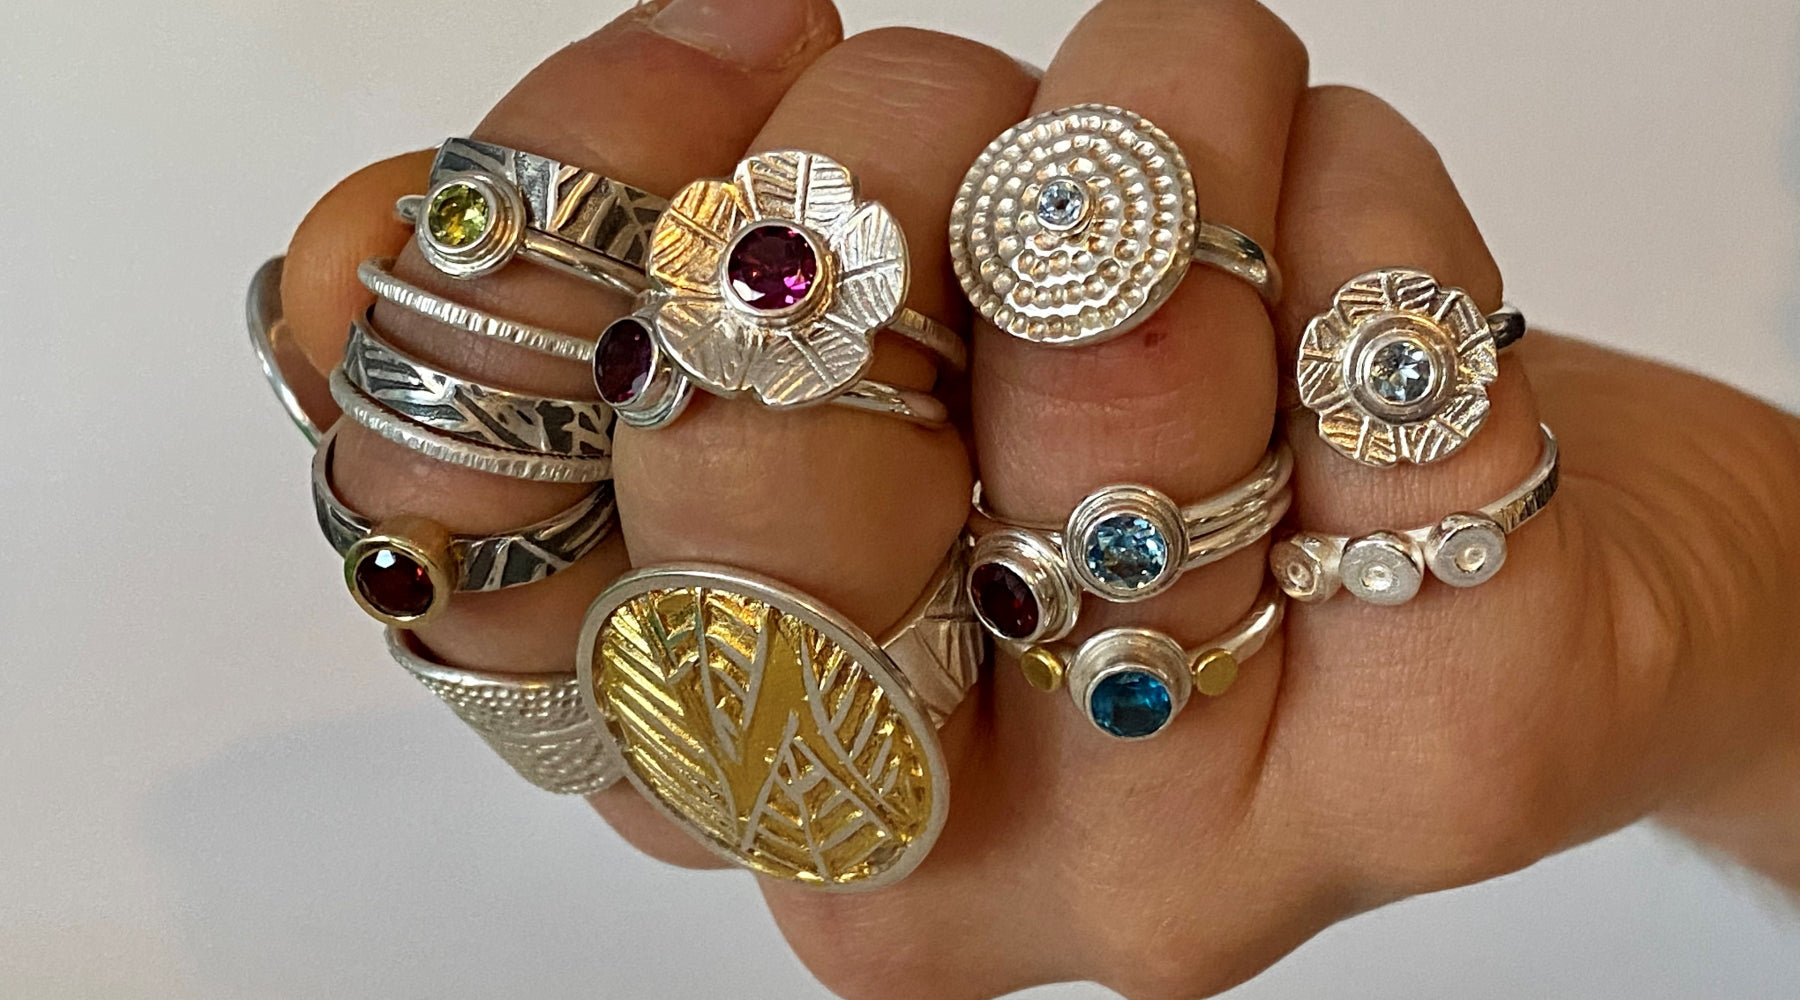 Handcrafted rings in silver and gold, with gemstones